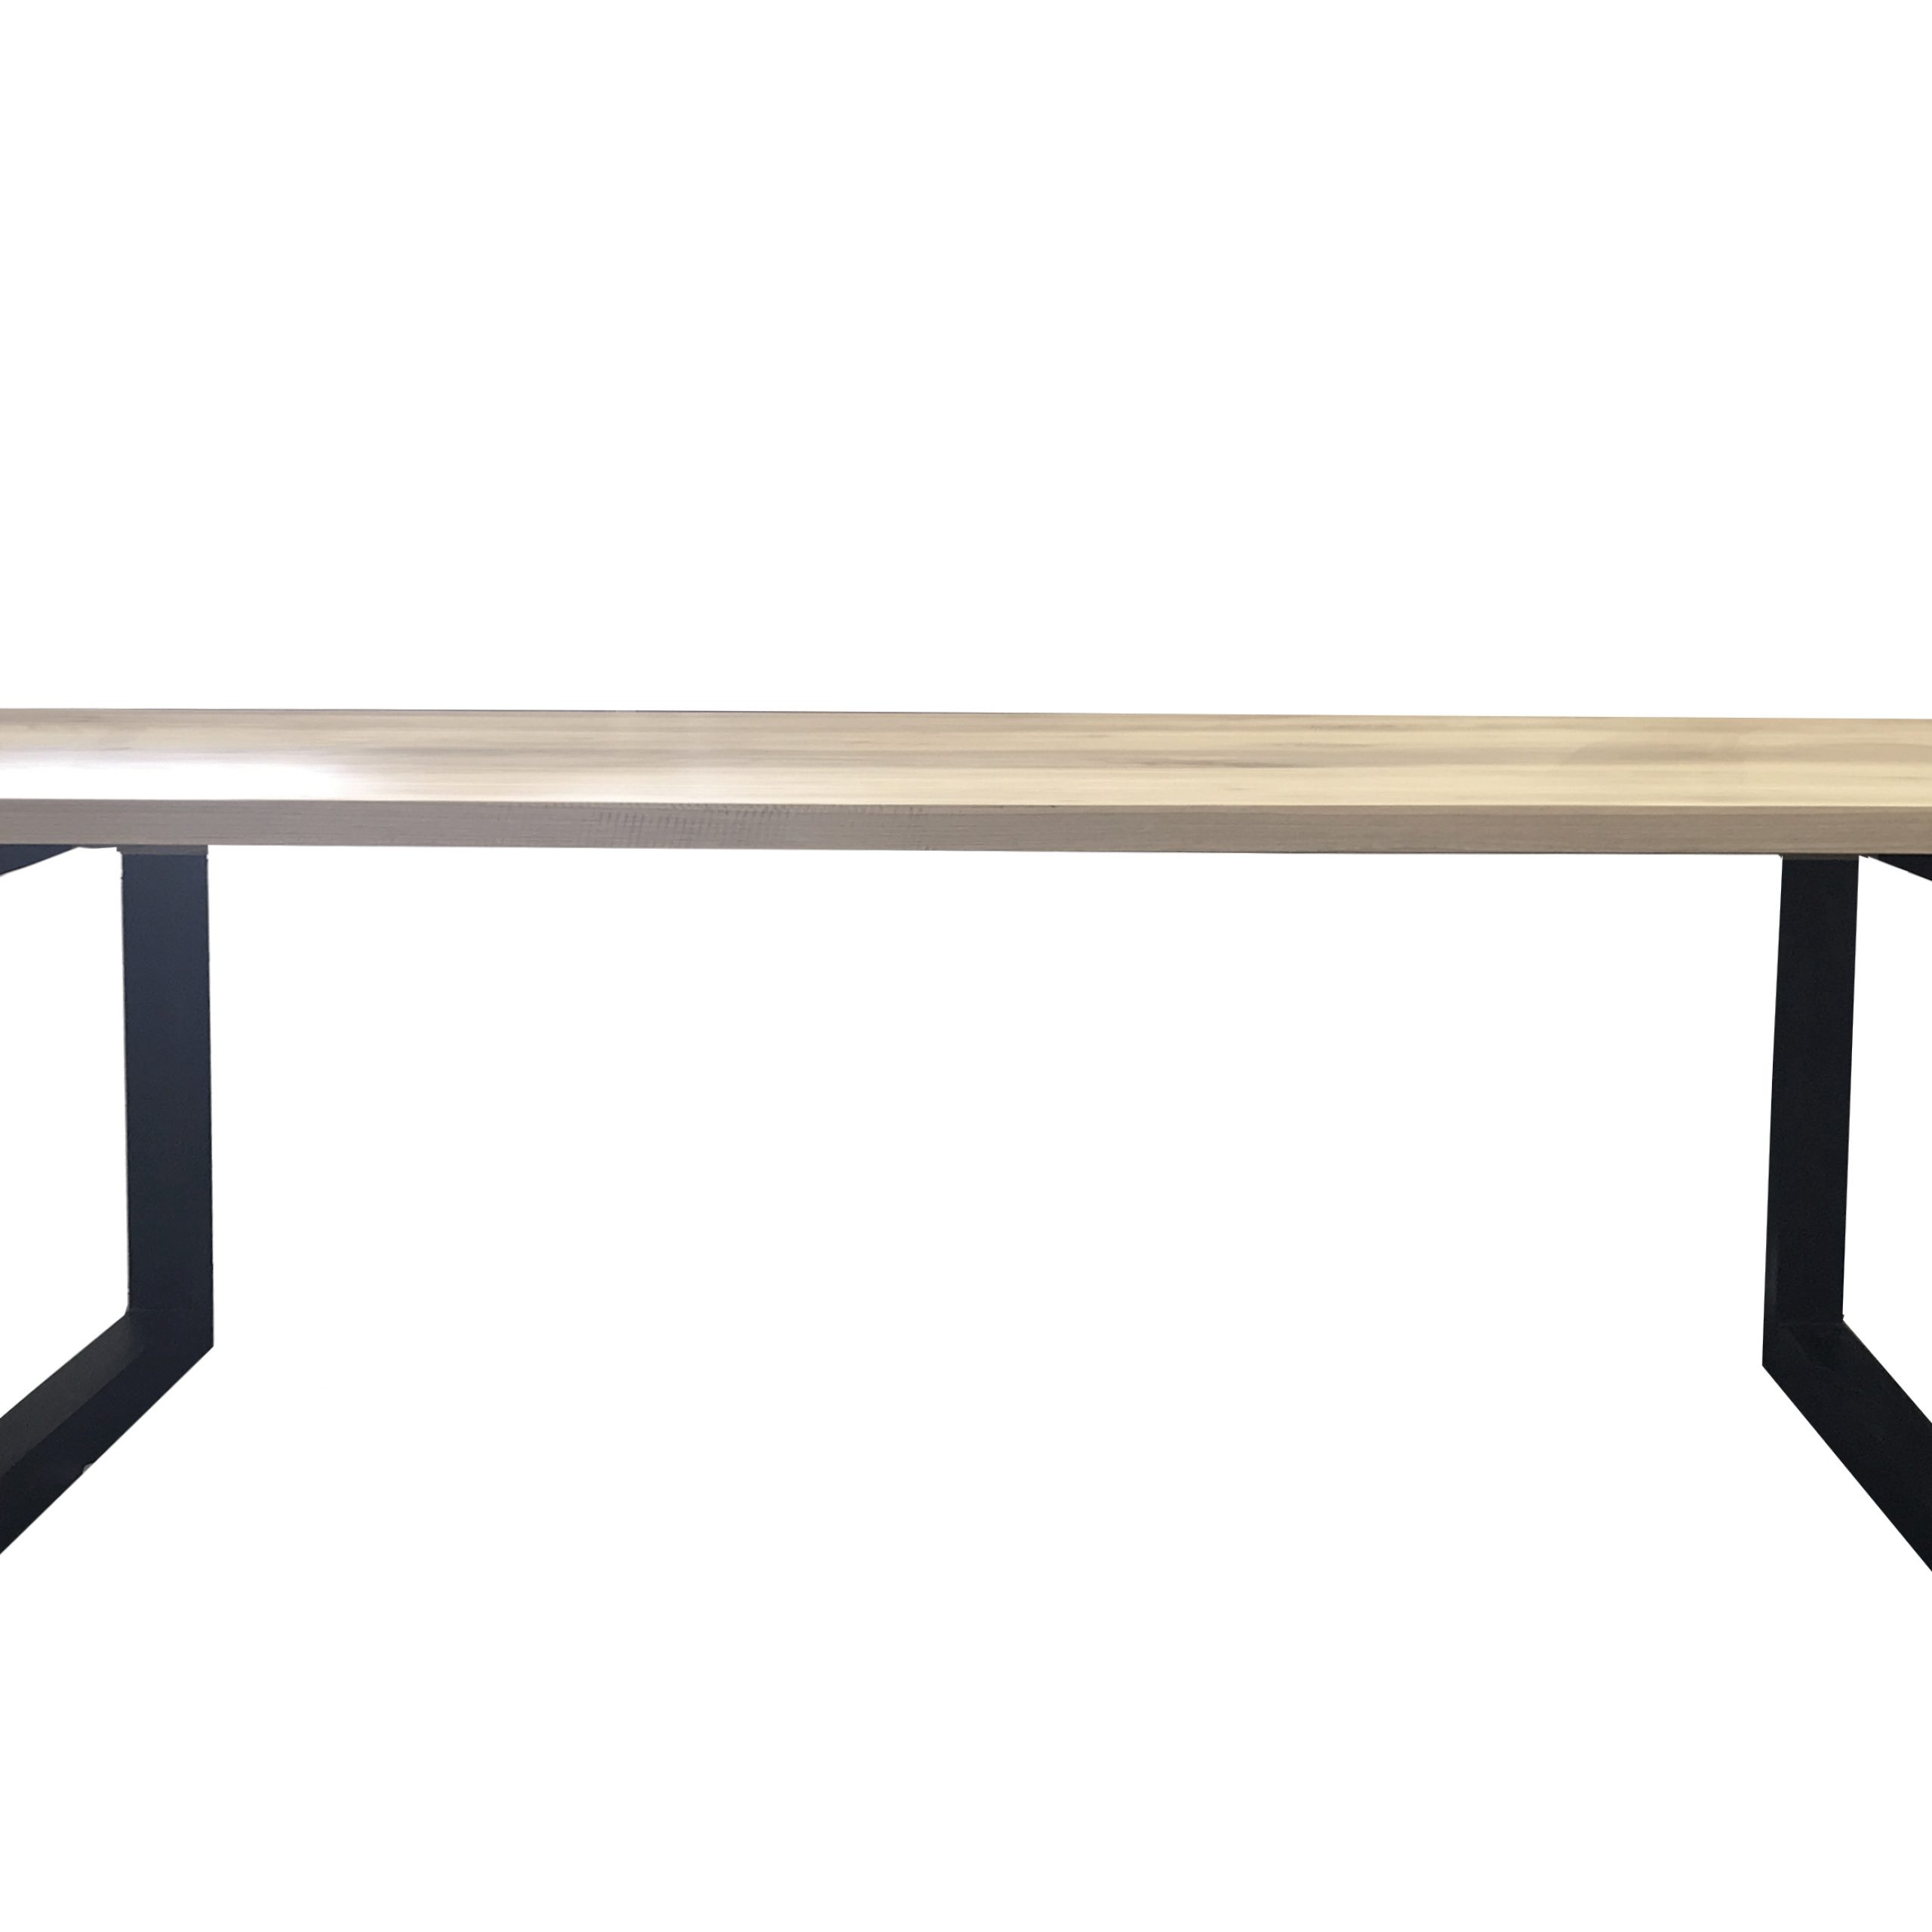 Rectangular Dining Tables For Most Recently Released Terence Rectangle Dining Table Black Legs (View 11 of 30)